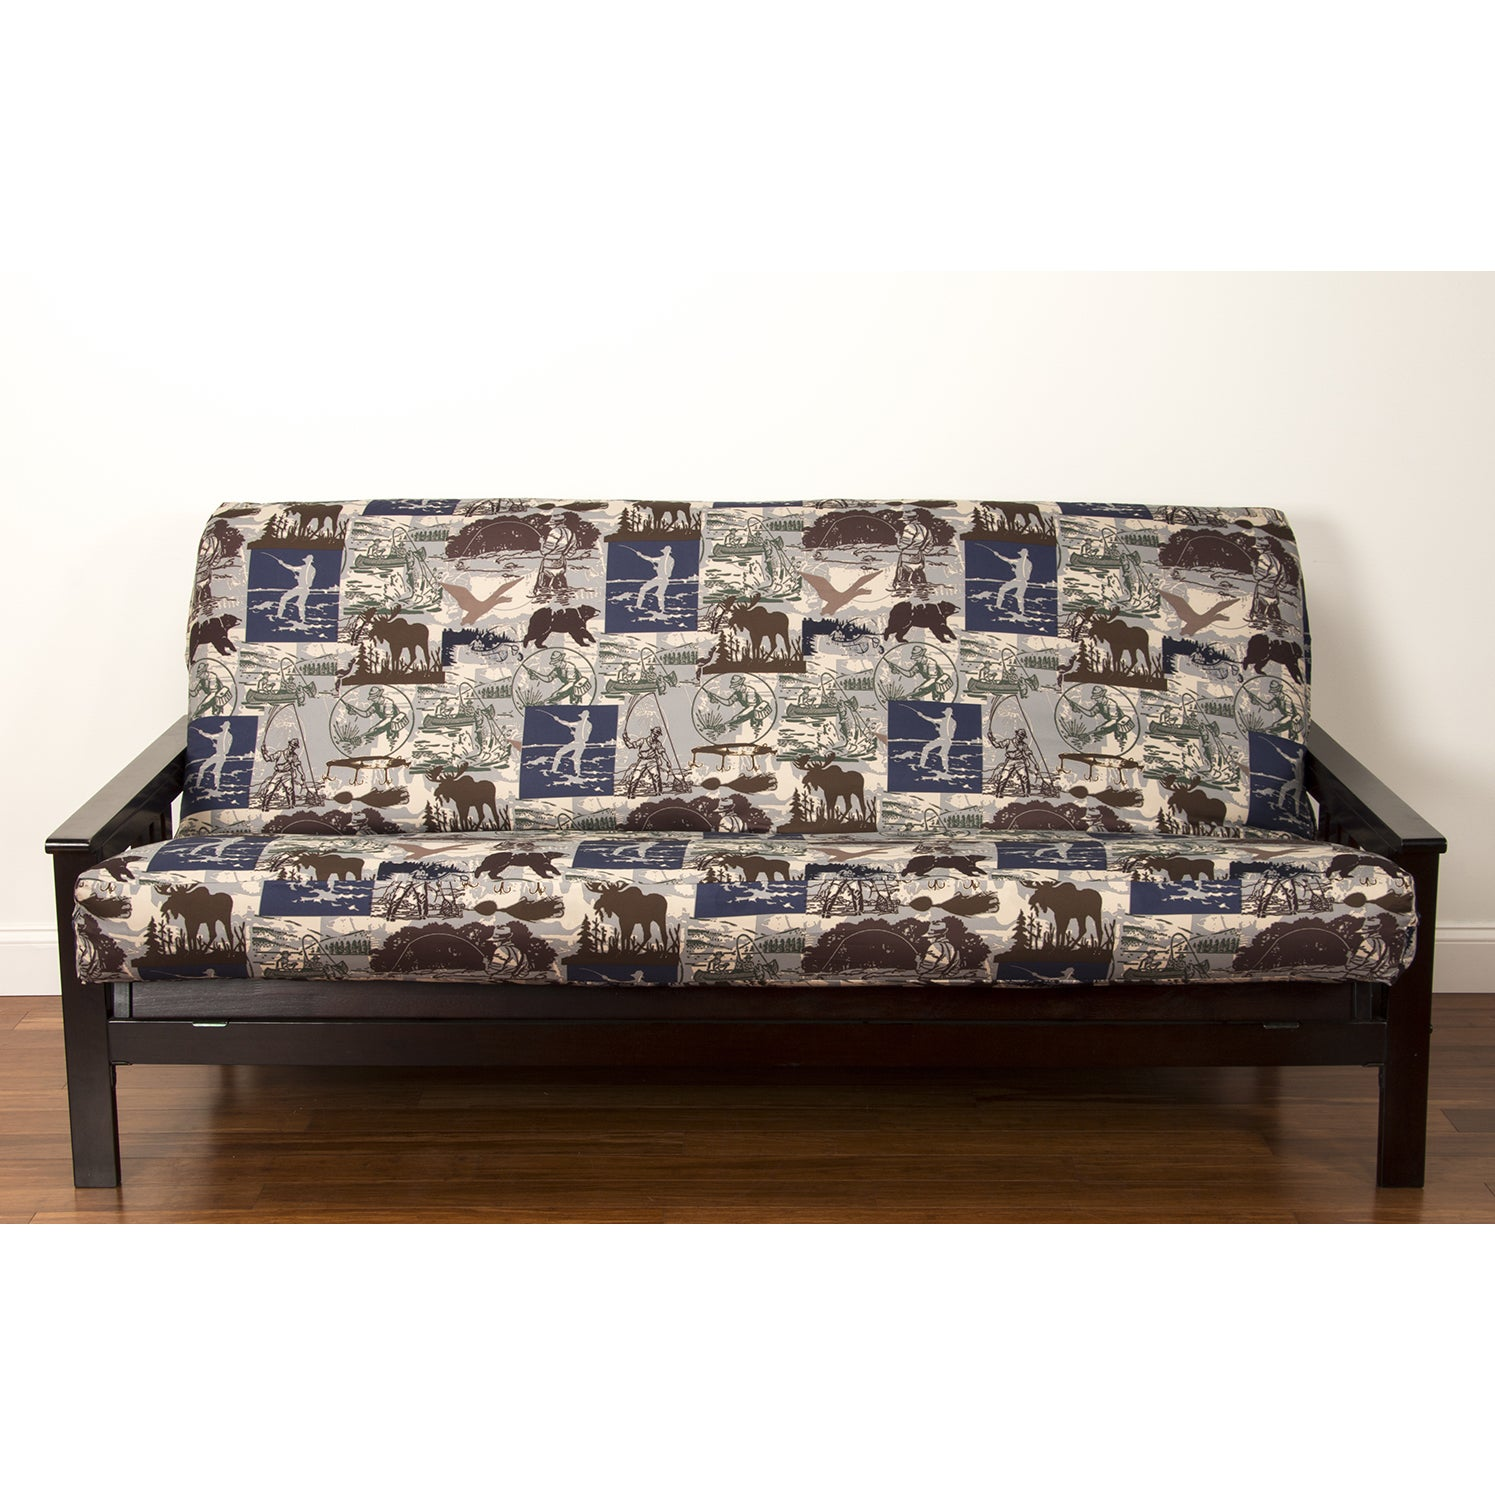 Siscovers North S Futon Cover Ebay